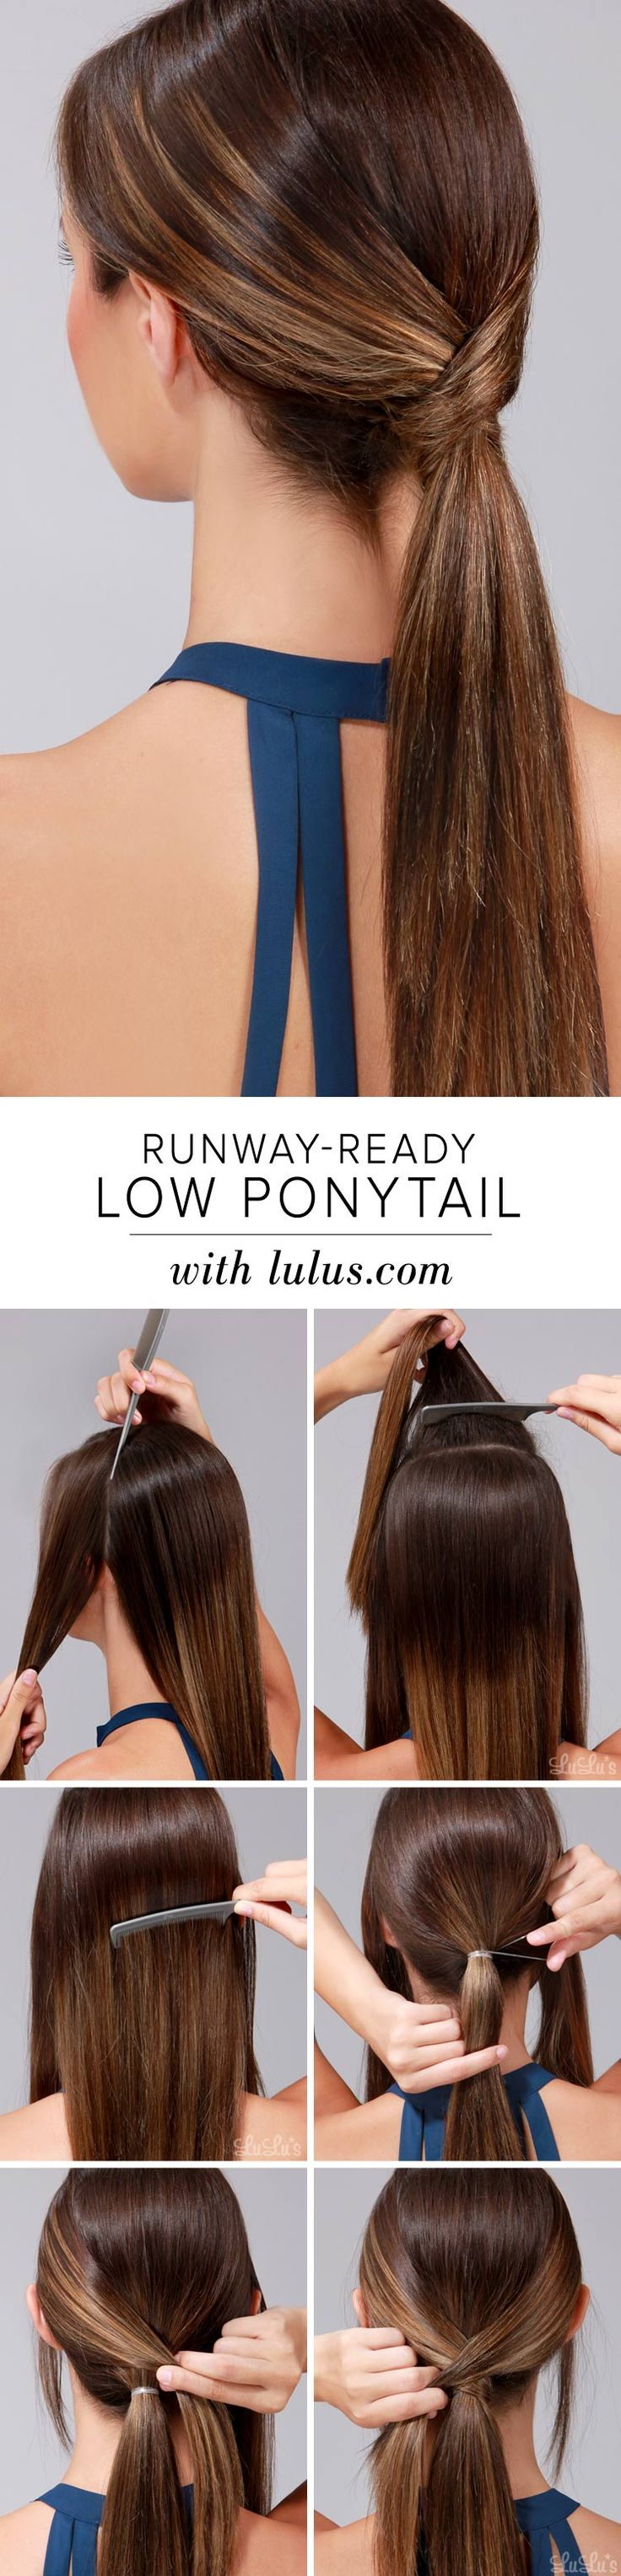 Best 25 Cute easy ponytails ideas on Pinterest